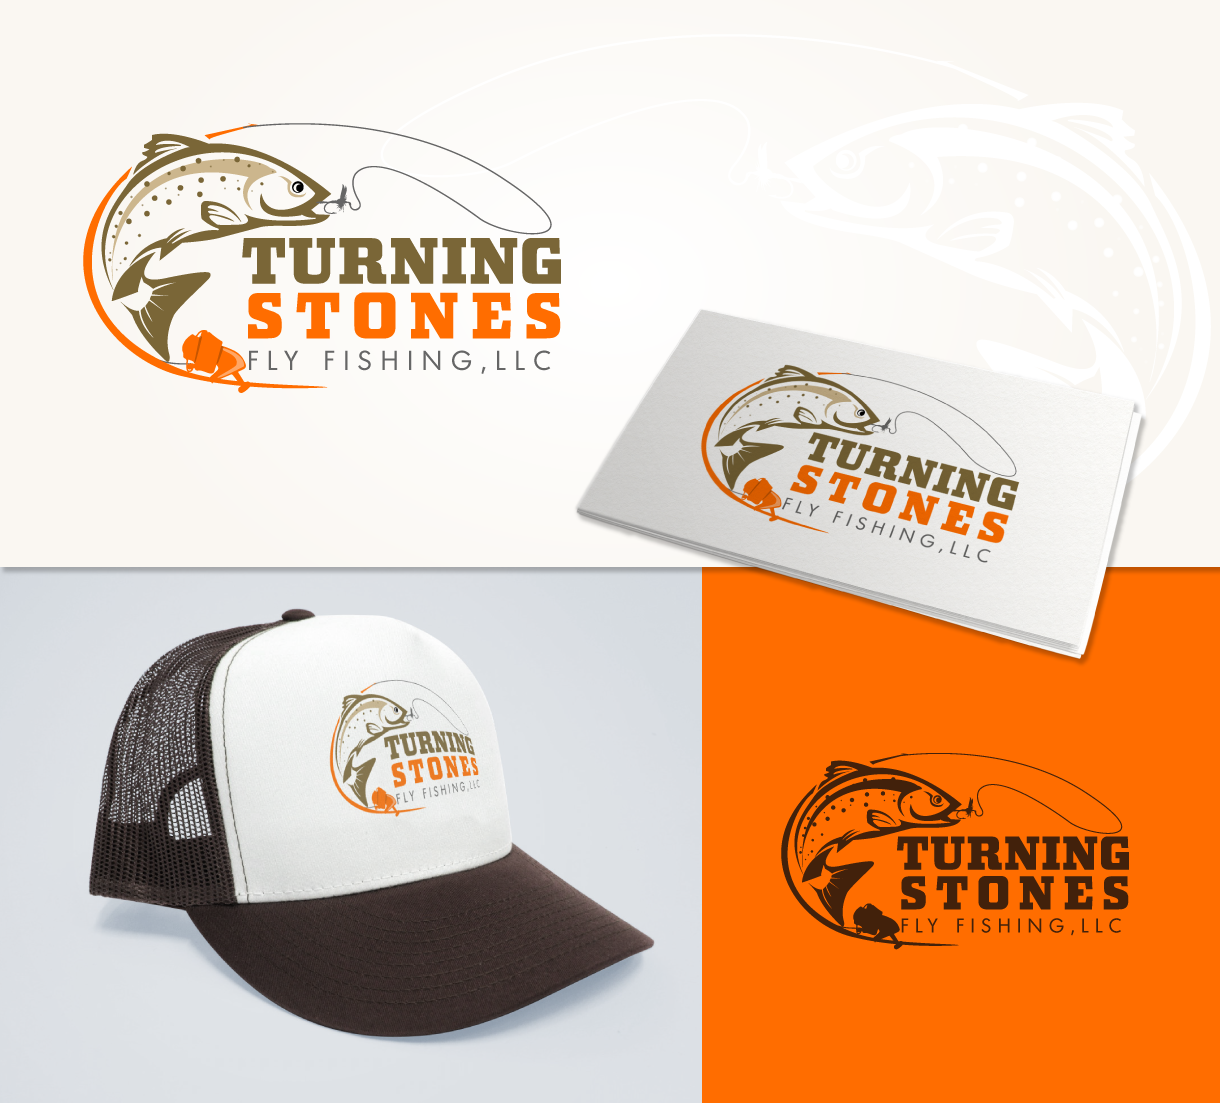 Logo Design by Tarek Khenfir - Entry No. 31 in the Logo Design Contest New Logo Design for Turning Stones Fly Fishing.